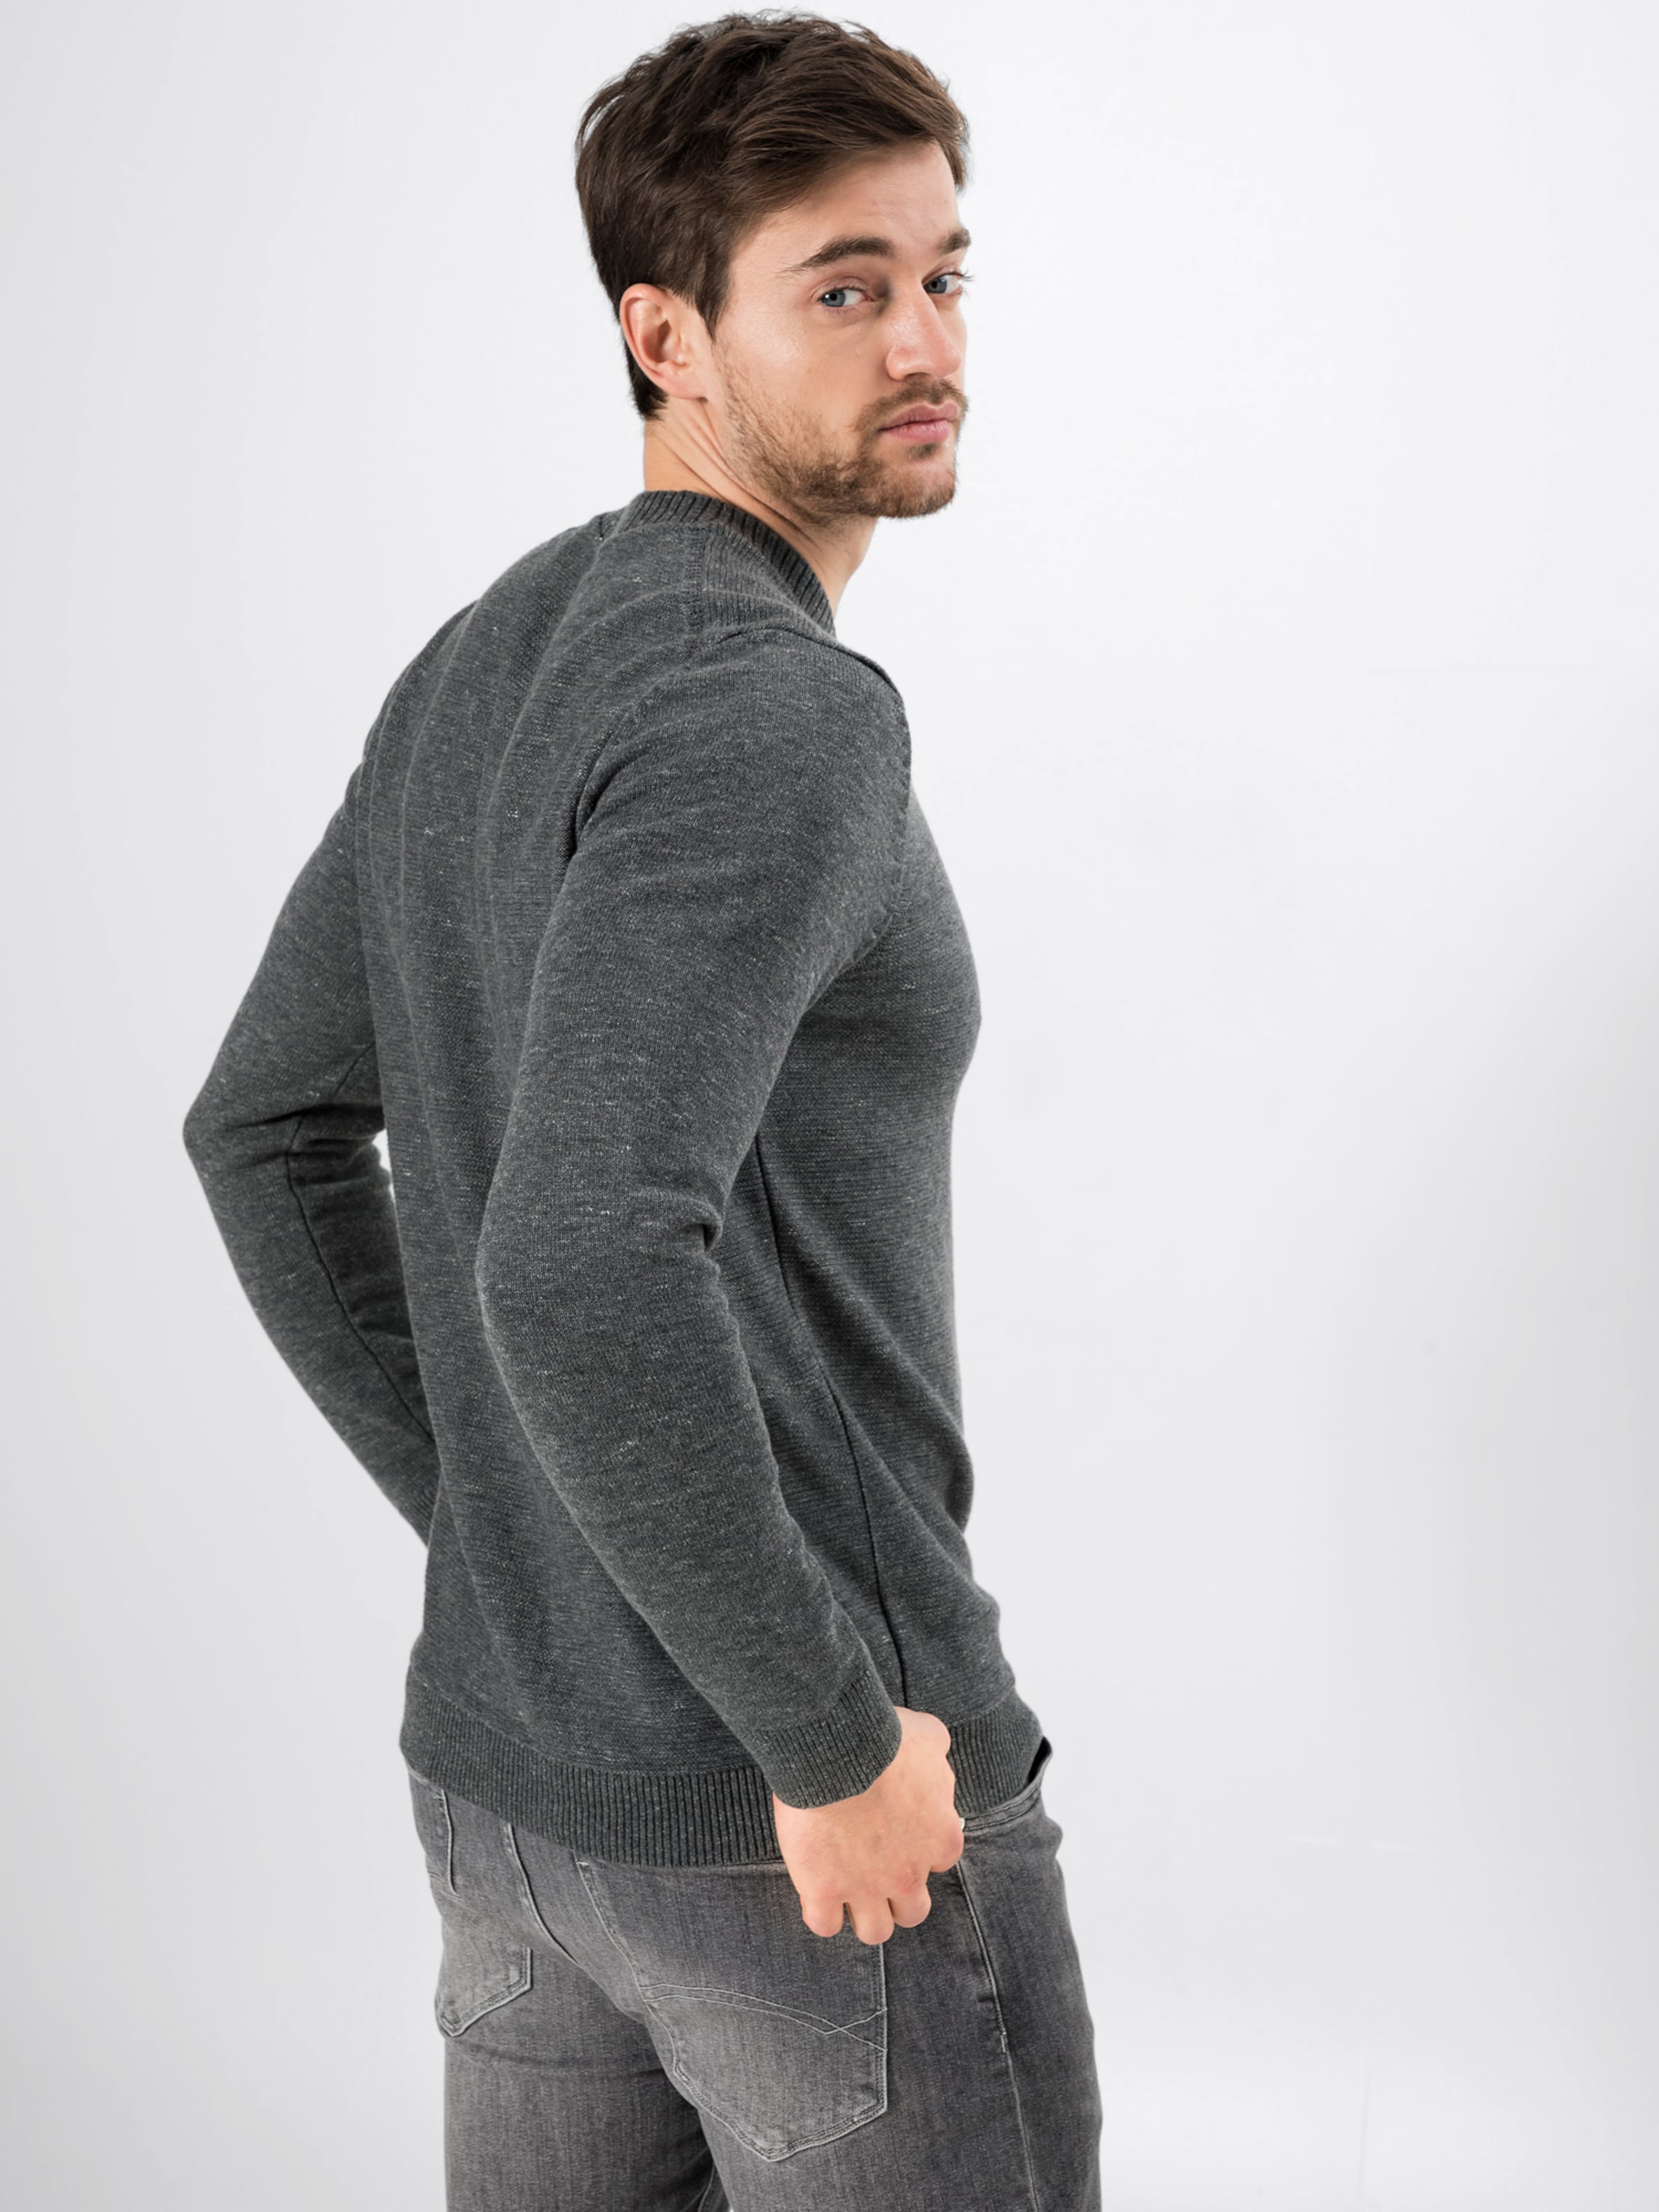 Pullover S oliver In S In Pullover Dunkelgrau S oliver oliver Dunkelgrau nm8wN0